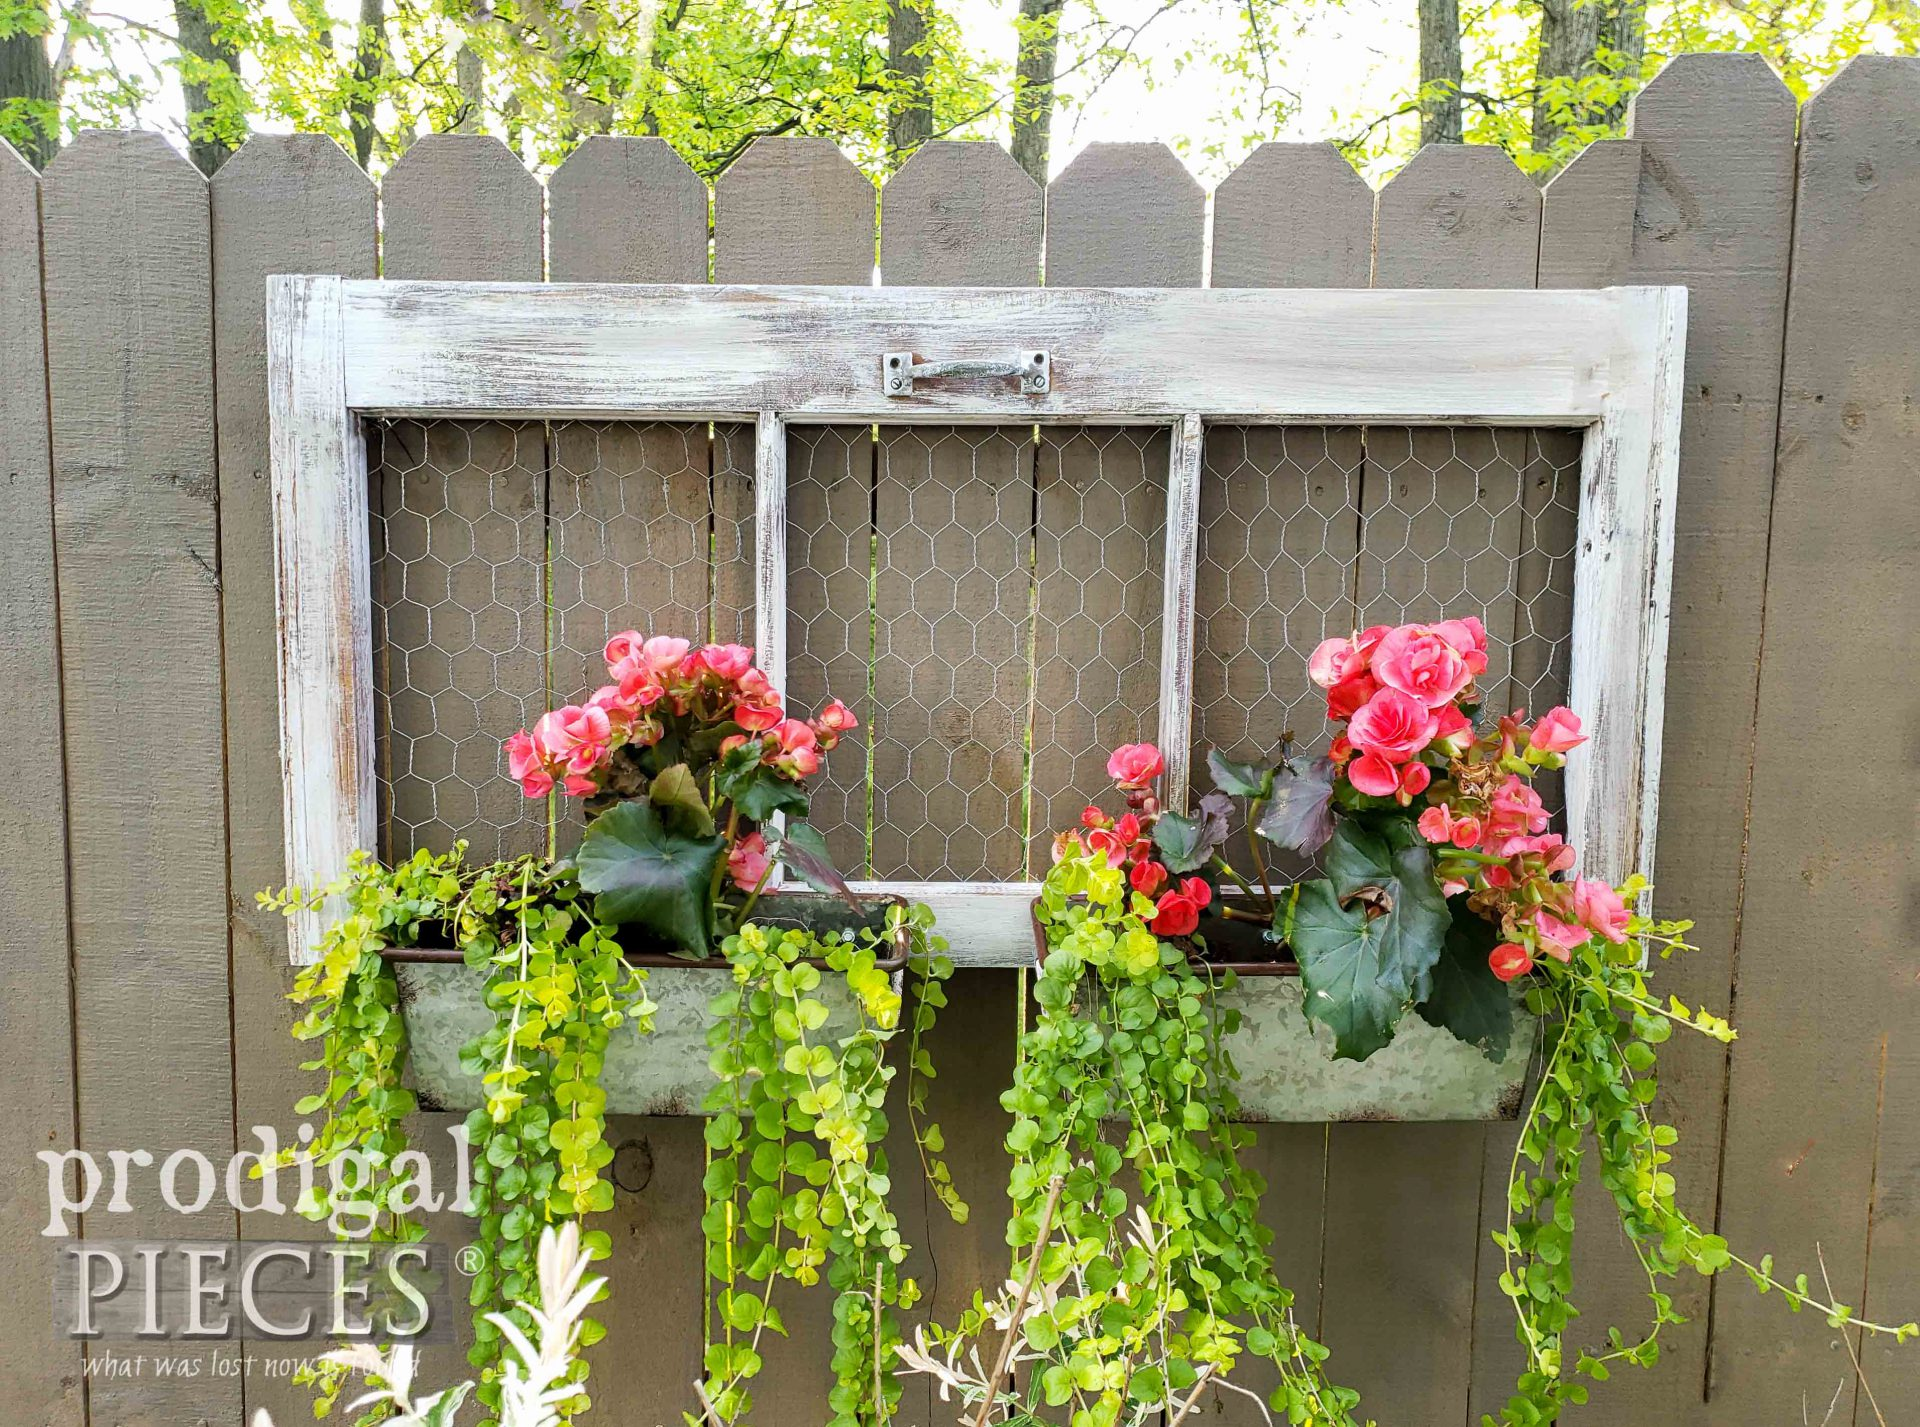 Chicken Wire Upcycled Window Planter by Larissa of Prodigal Pieces | prodigalpieces.com #prodigalpieces #garden #diy #home #homedecor #upcycled